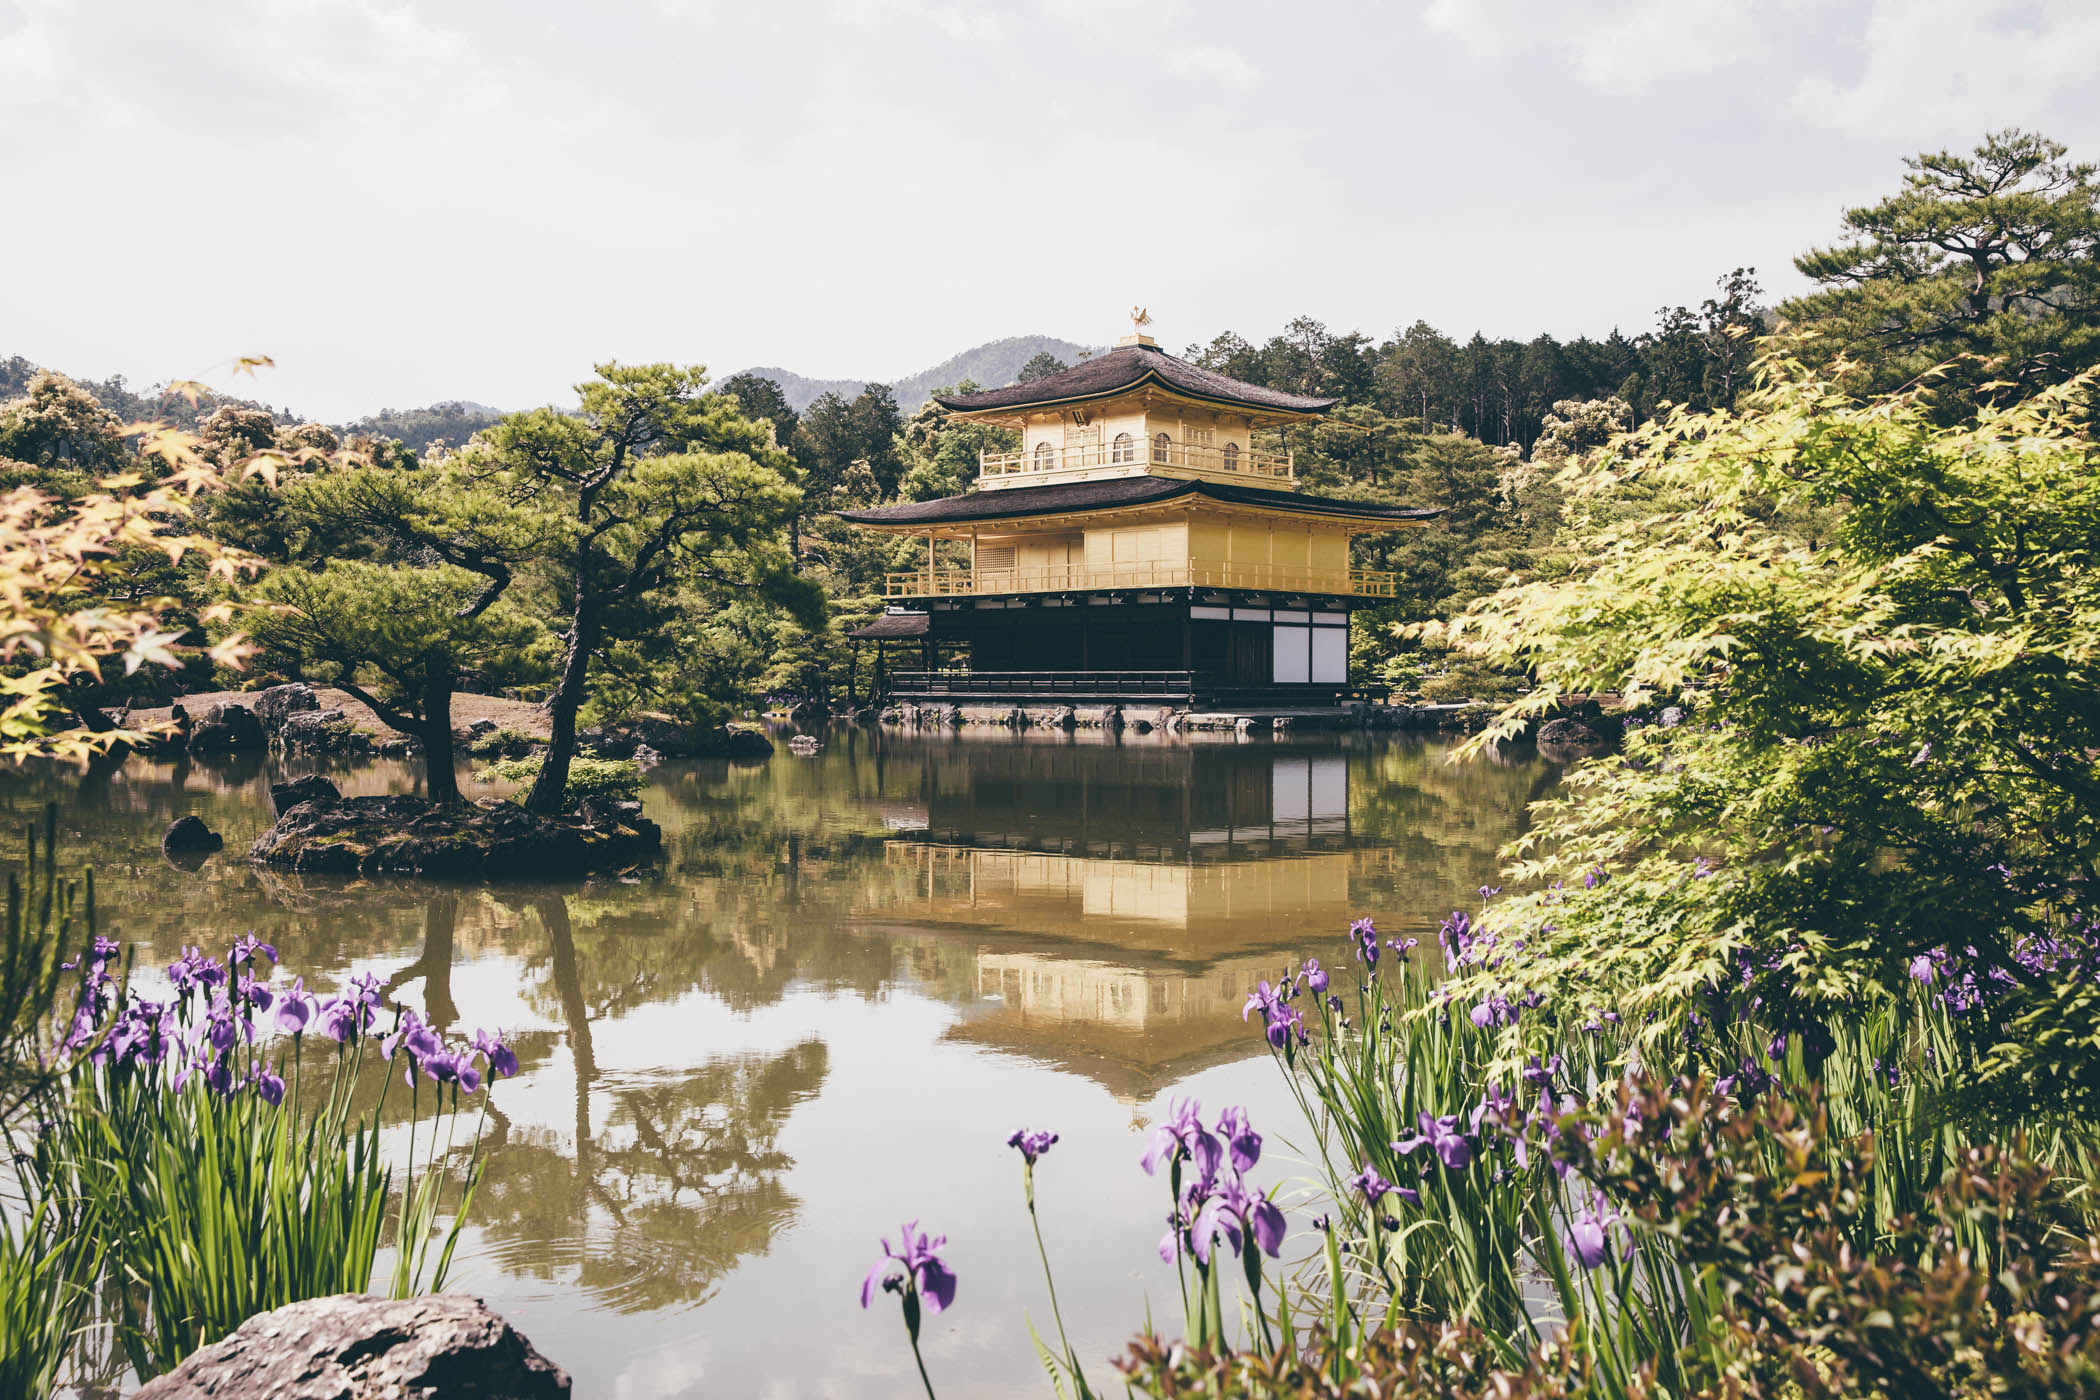 The golden temple Kinkaku-Ji in Kyoto